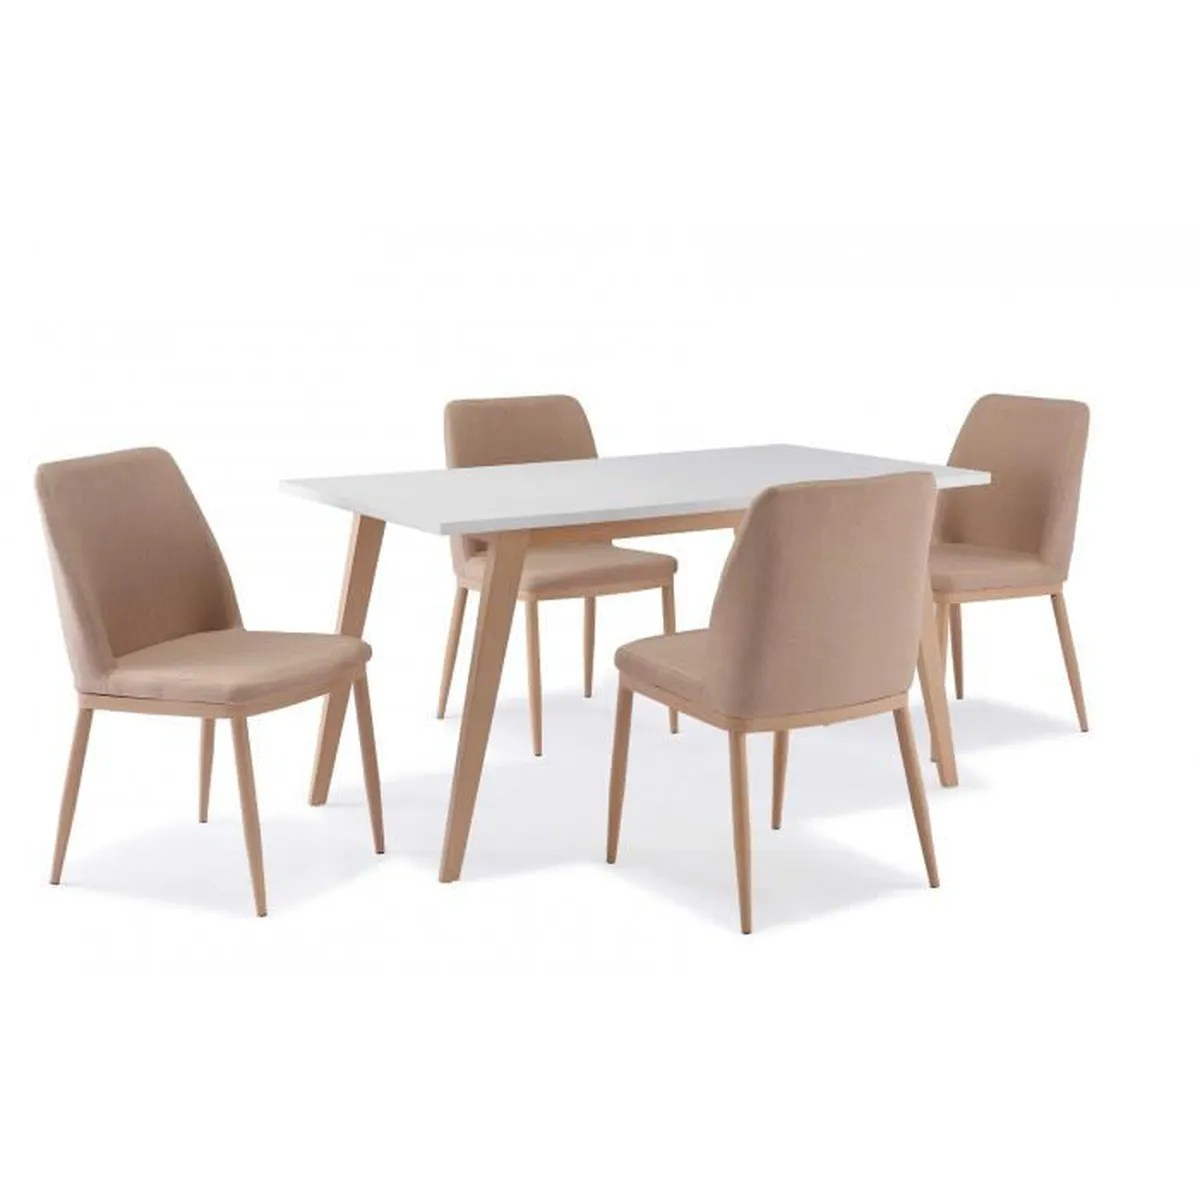 Table Chaises Scandinaves Table 4 Chaises Scandinave Yeta Achat Vente Table à Manger